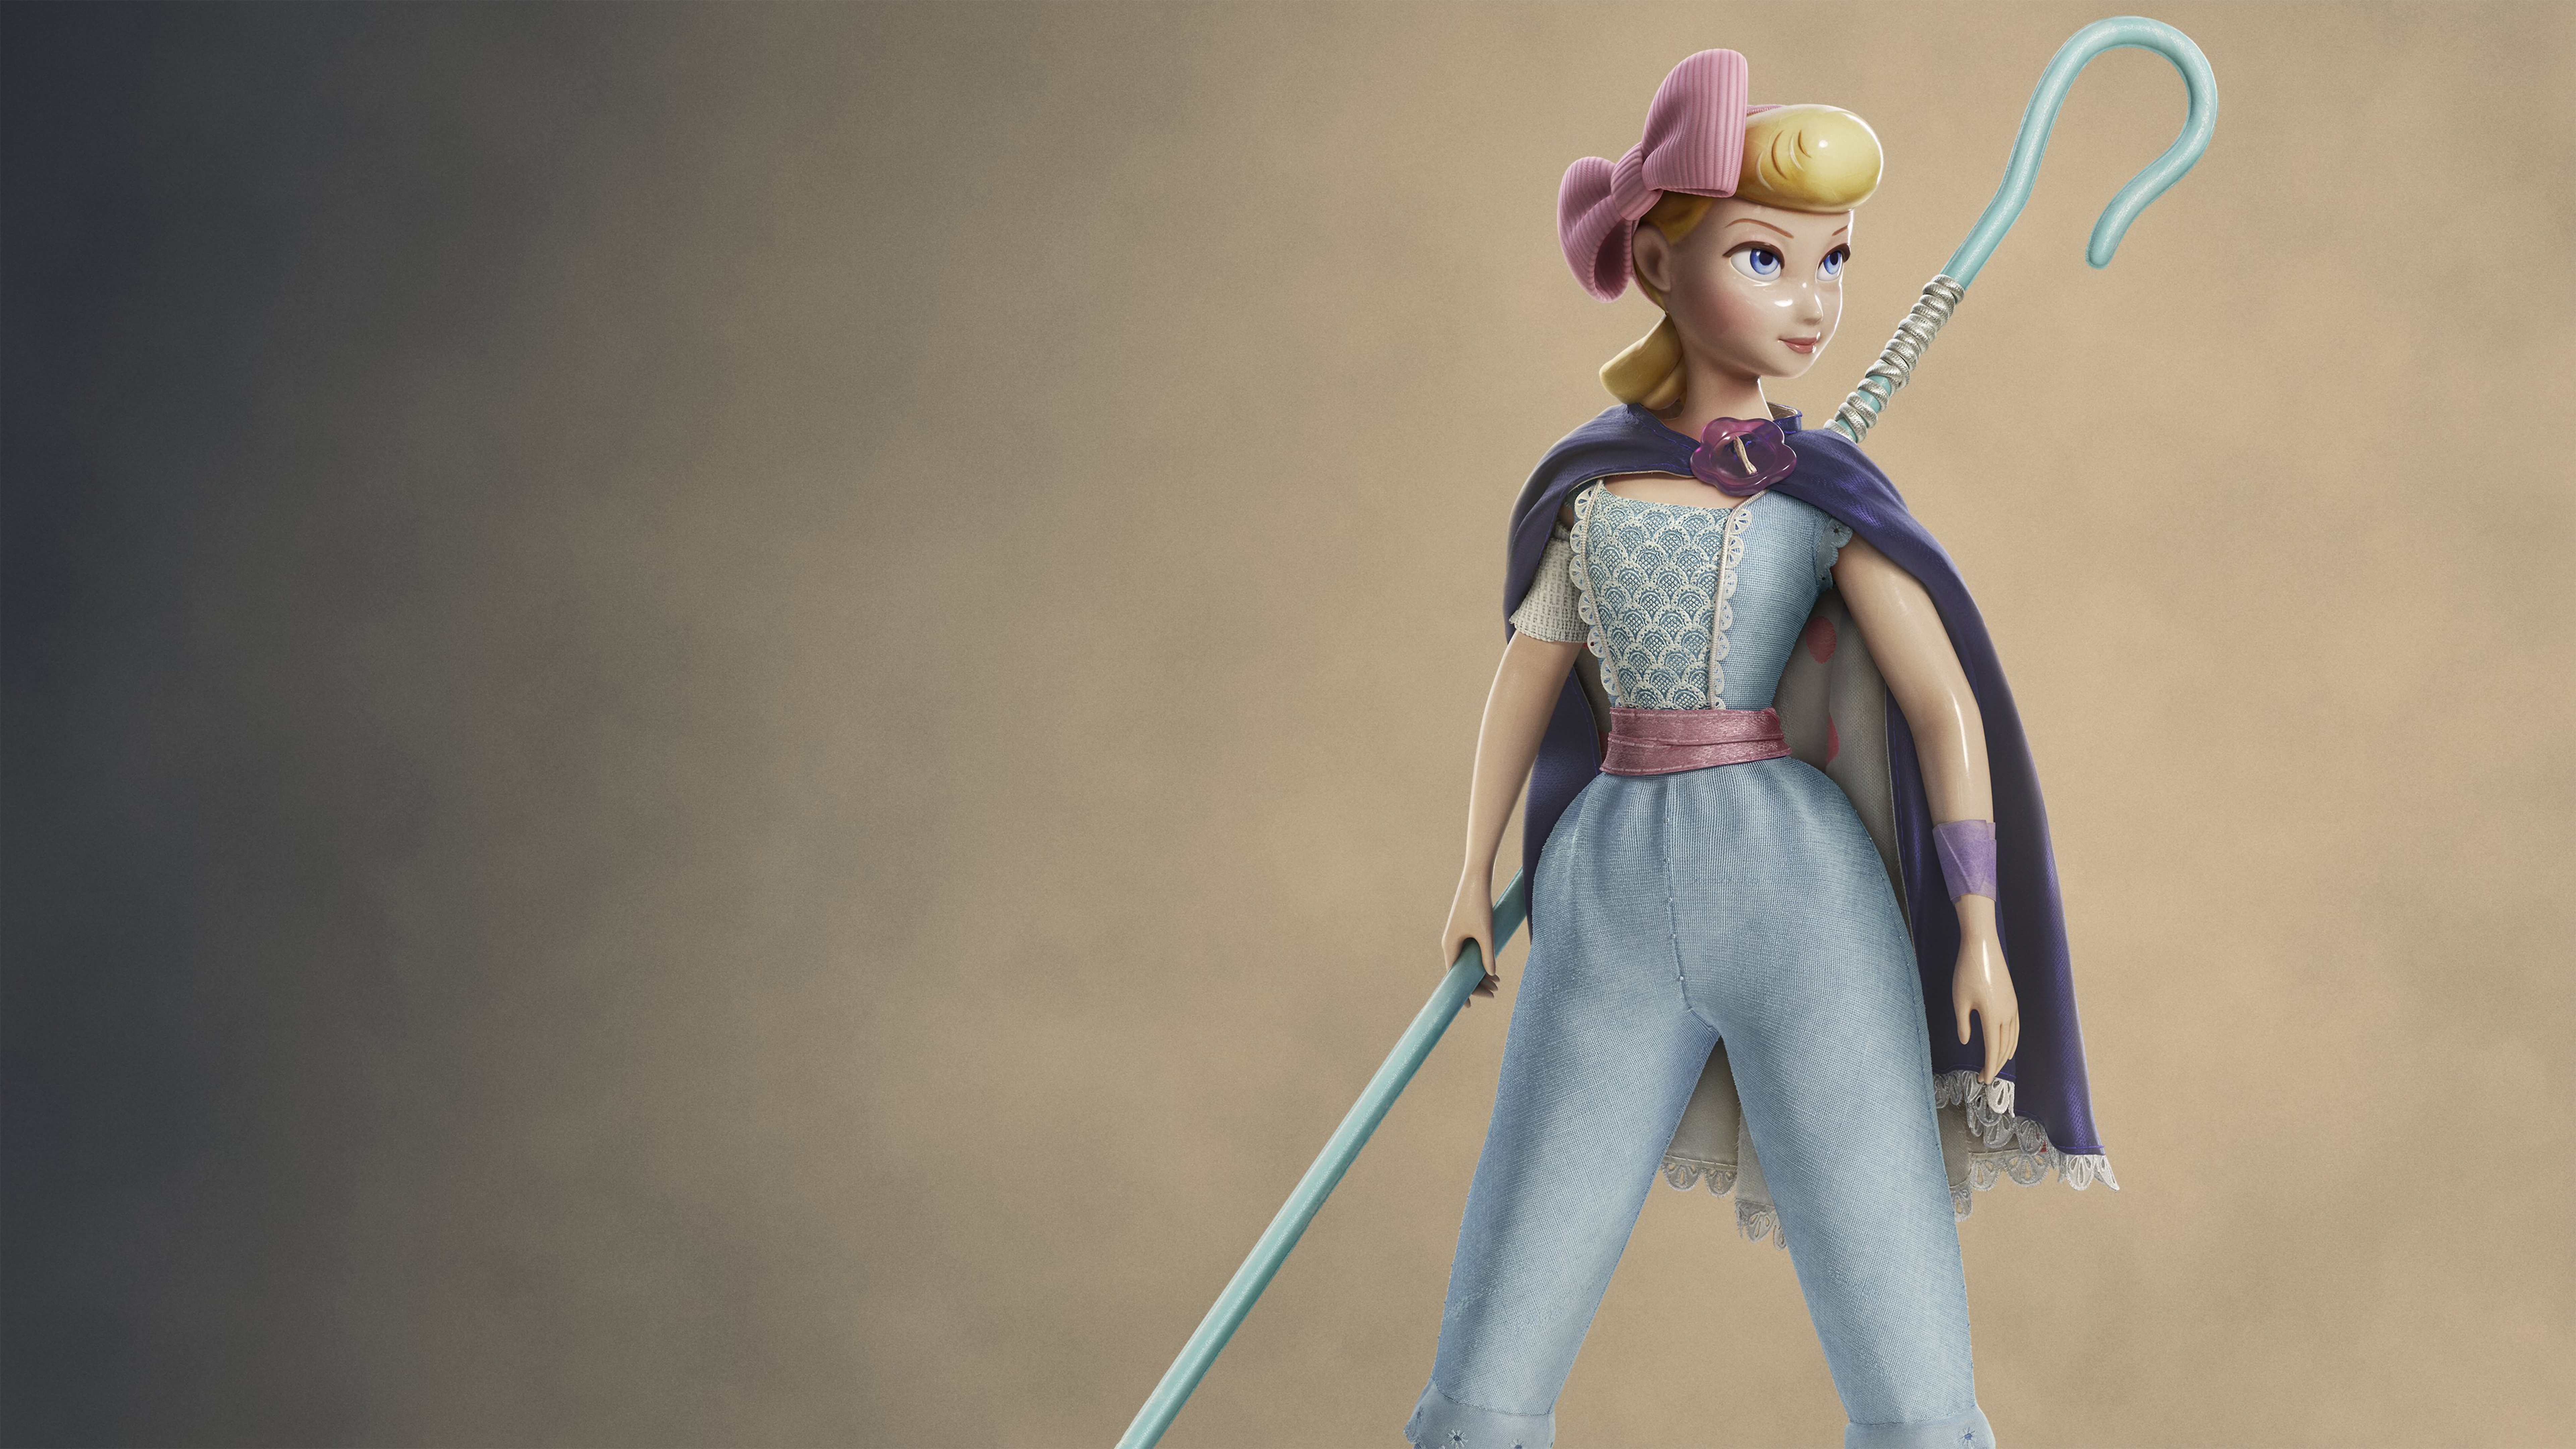 Bo Peep Toy Story 4 Wallpaper HD Movies 4K Wallpapers Images 7680x4320